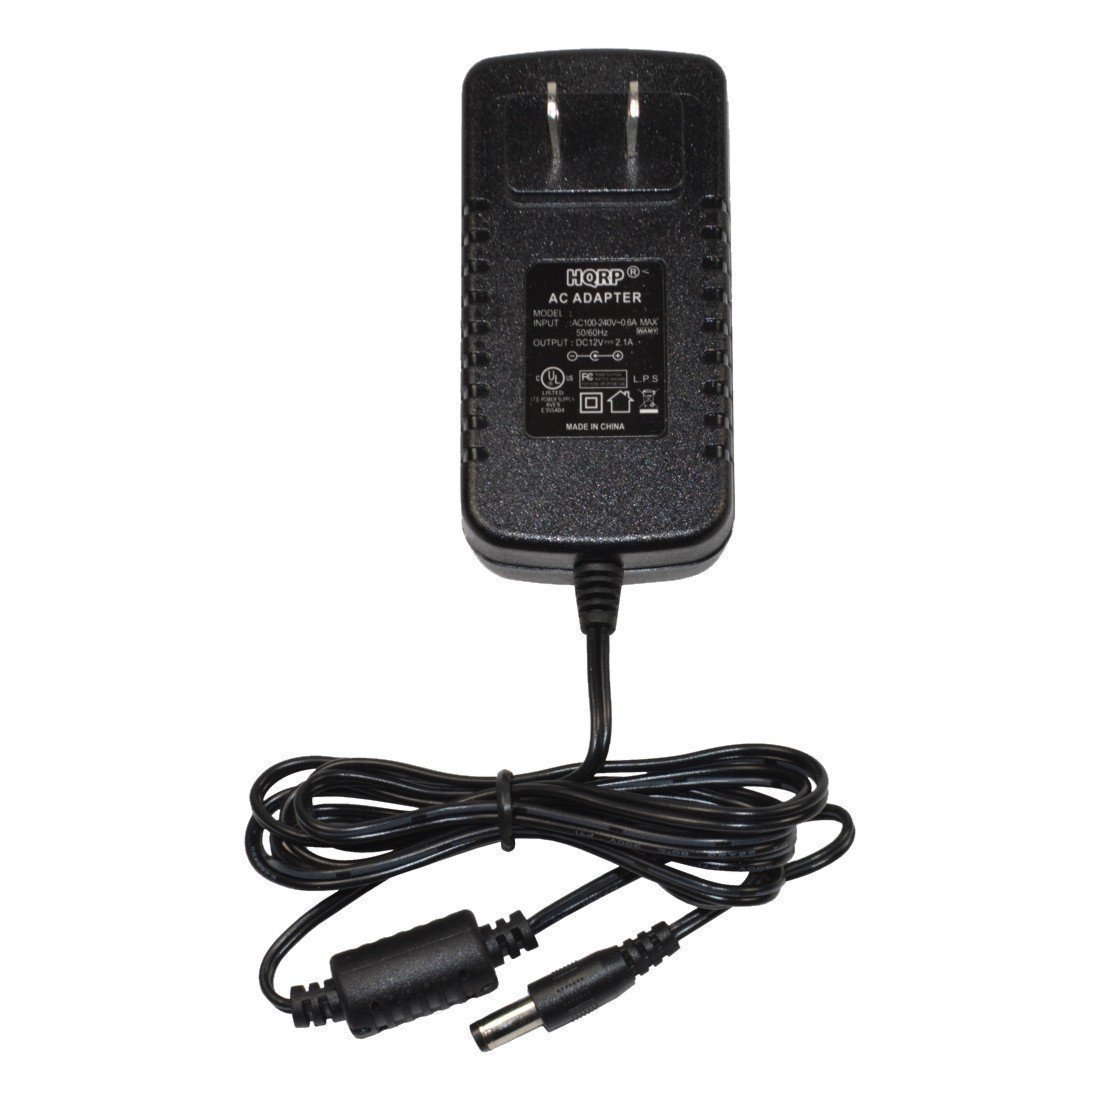 HQRP 12V AC Adapter Charger for TDK A33 A34 Life on Record Wireless Weatherproof Speaker A-33 A-34 Portable Rechargeable Power Supply PSU Cord Mains Adaptor + Euro Plug Adapter 887774408021702